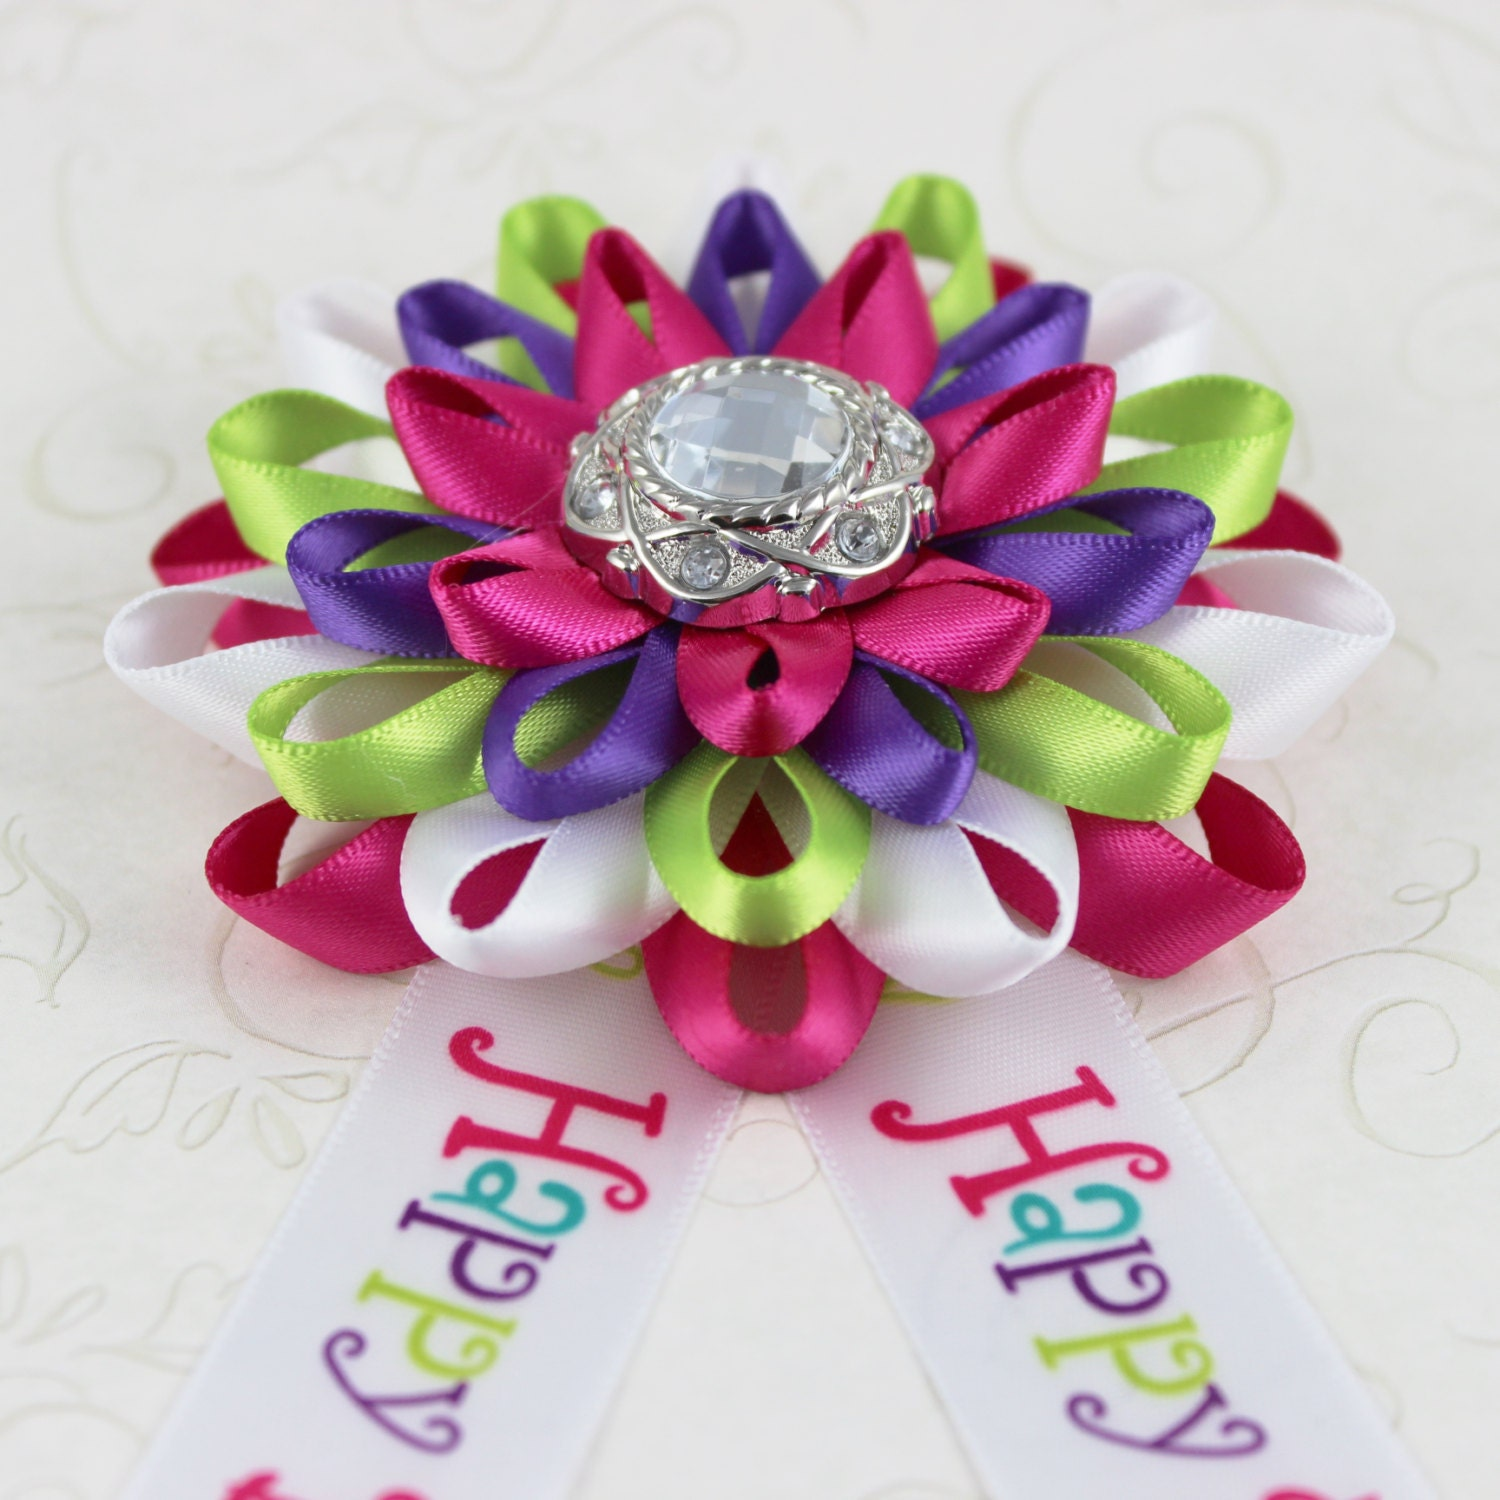 Birthday party decorations happy birthday corsage happy birthday birthday party decorations happy birthday corsage happy birthday ribbon pin adult birthday gift purple lime green colorful izmirmasajfo